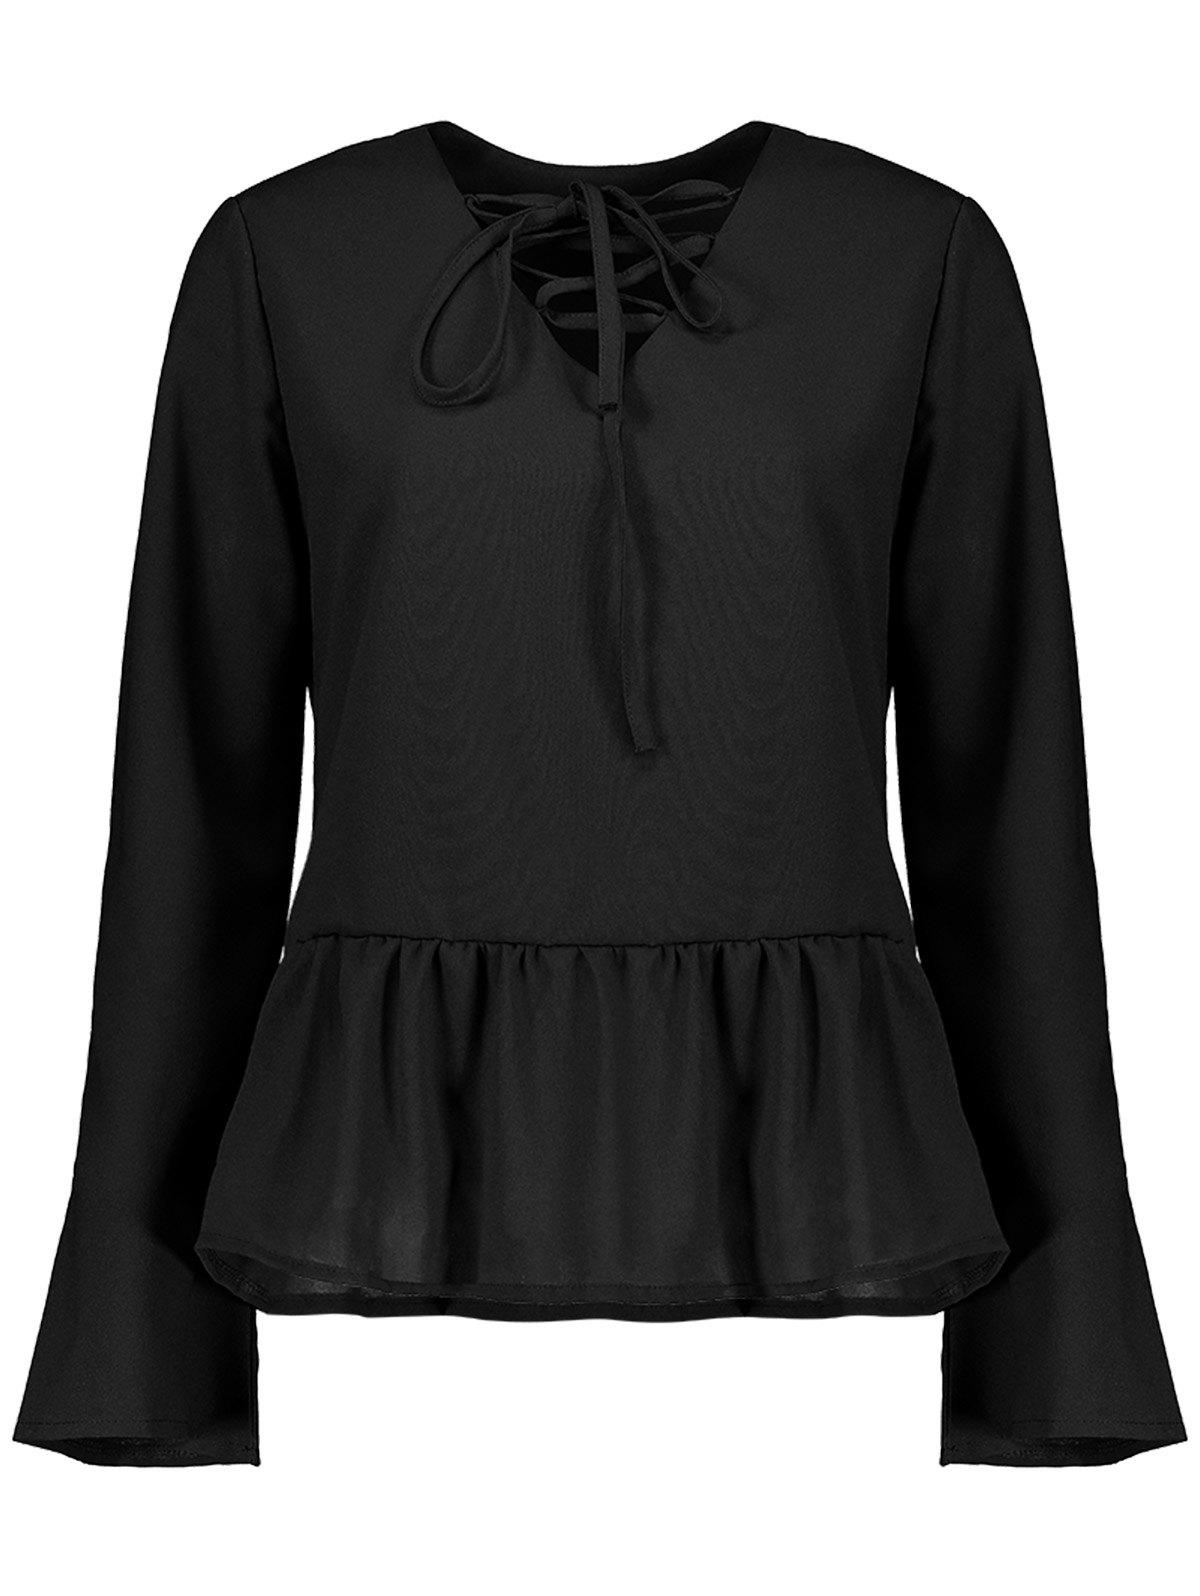 Discount Flare Sleeve Lace Up Peplum Top